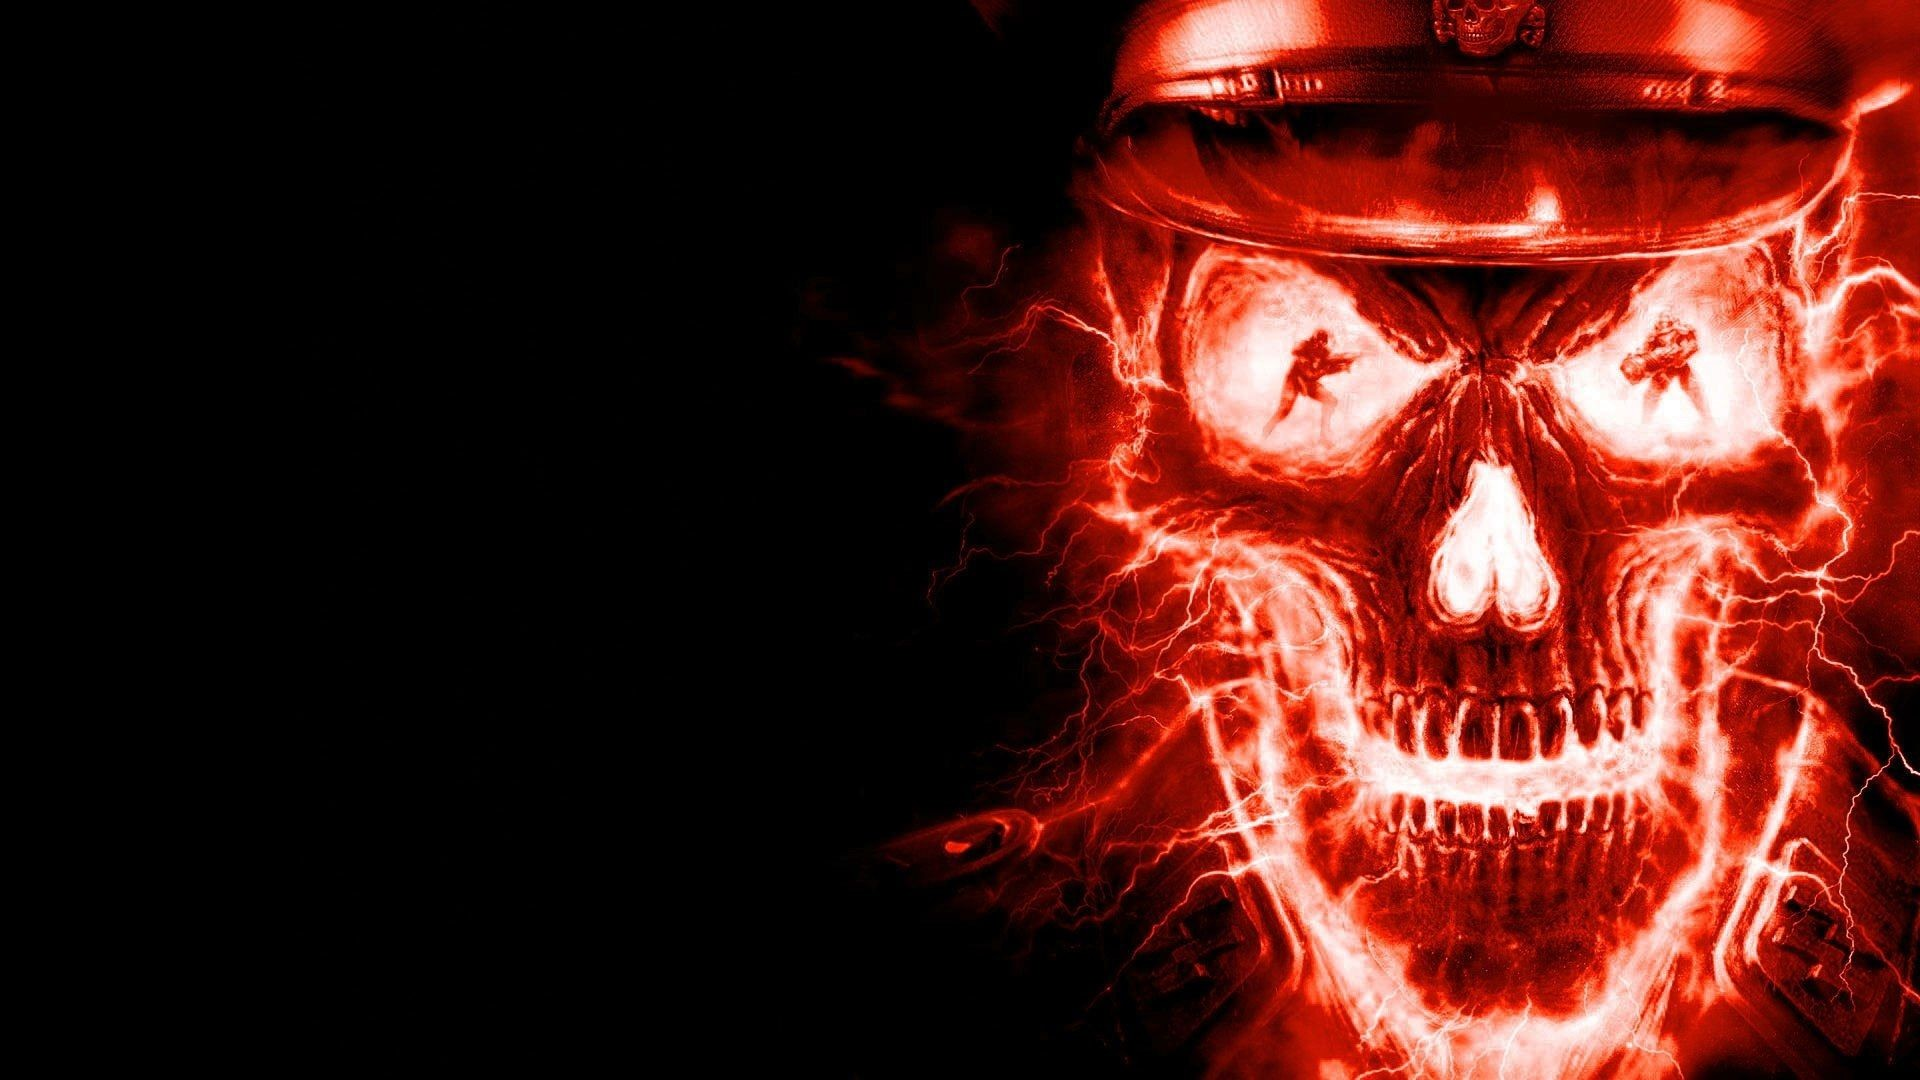 Res: 1920x1080, Fire Skull Wallpaper Free Download High PX ~ Music Skull .